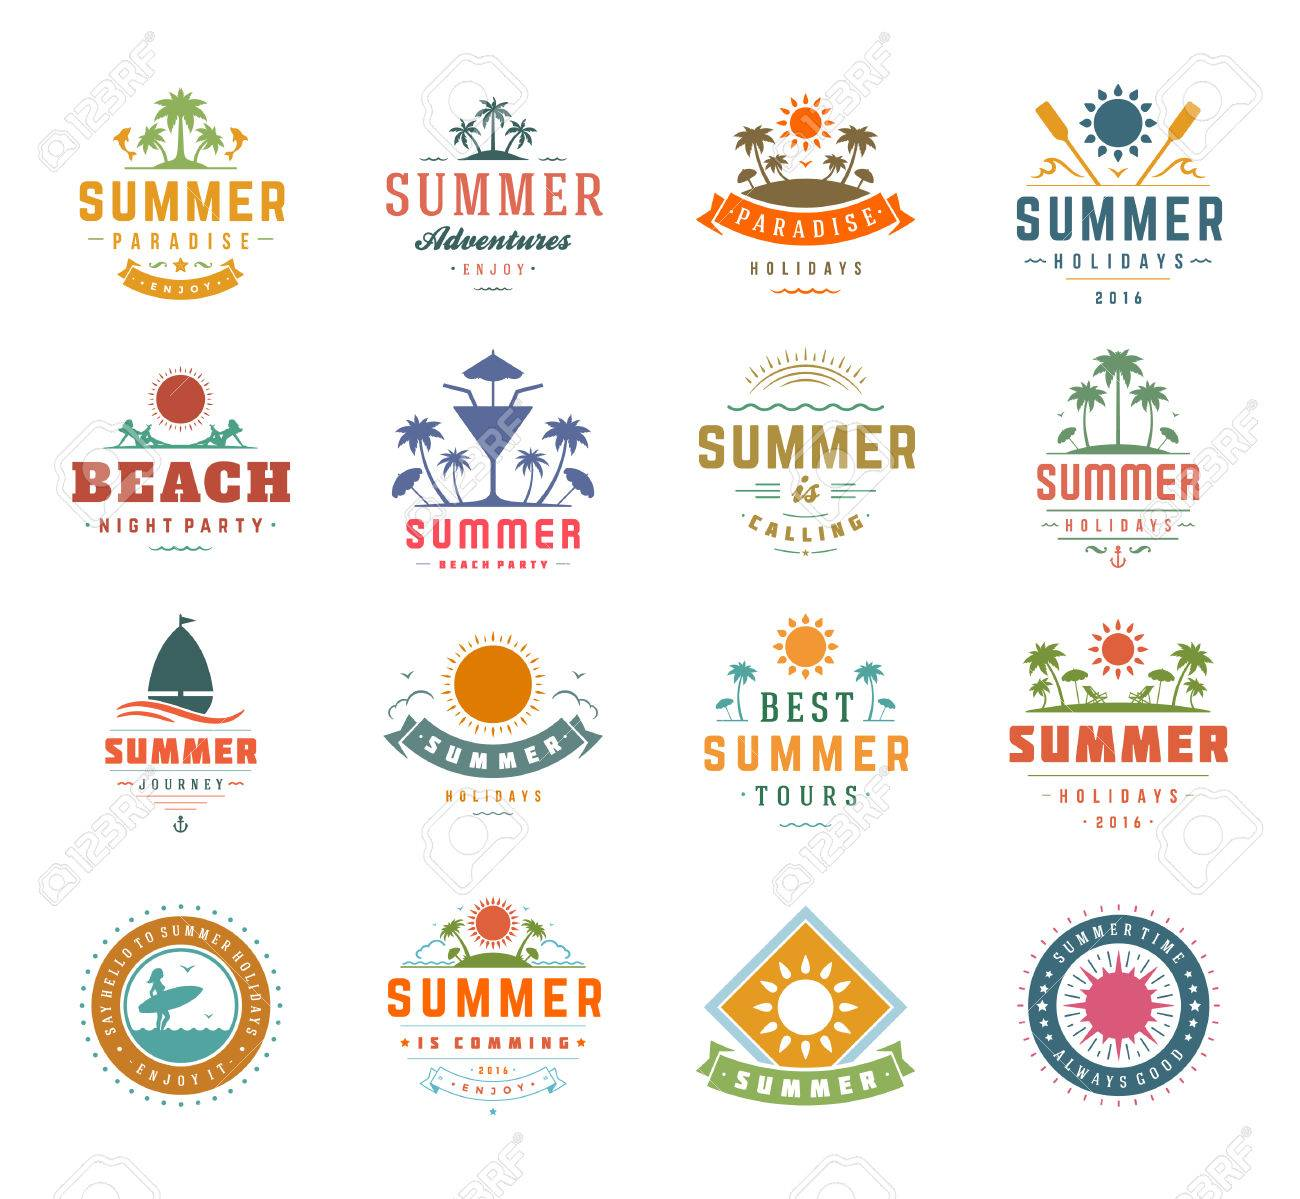 Summer Holidays Design Elements and Typography Set. Retro and Vintage Templates Labels or Badges Good for Posters, Beach Party, Greeting Cards. Vector Illustrations and Objects. Tropical paradise. - 56013535